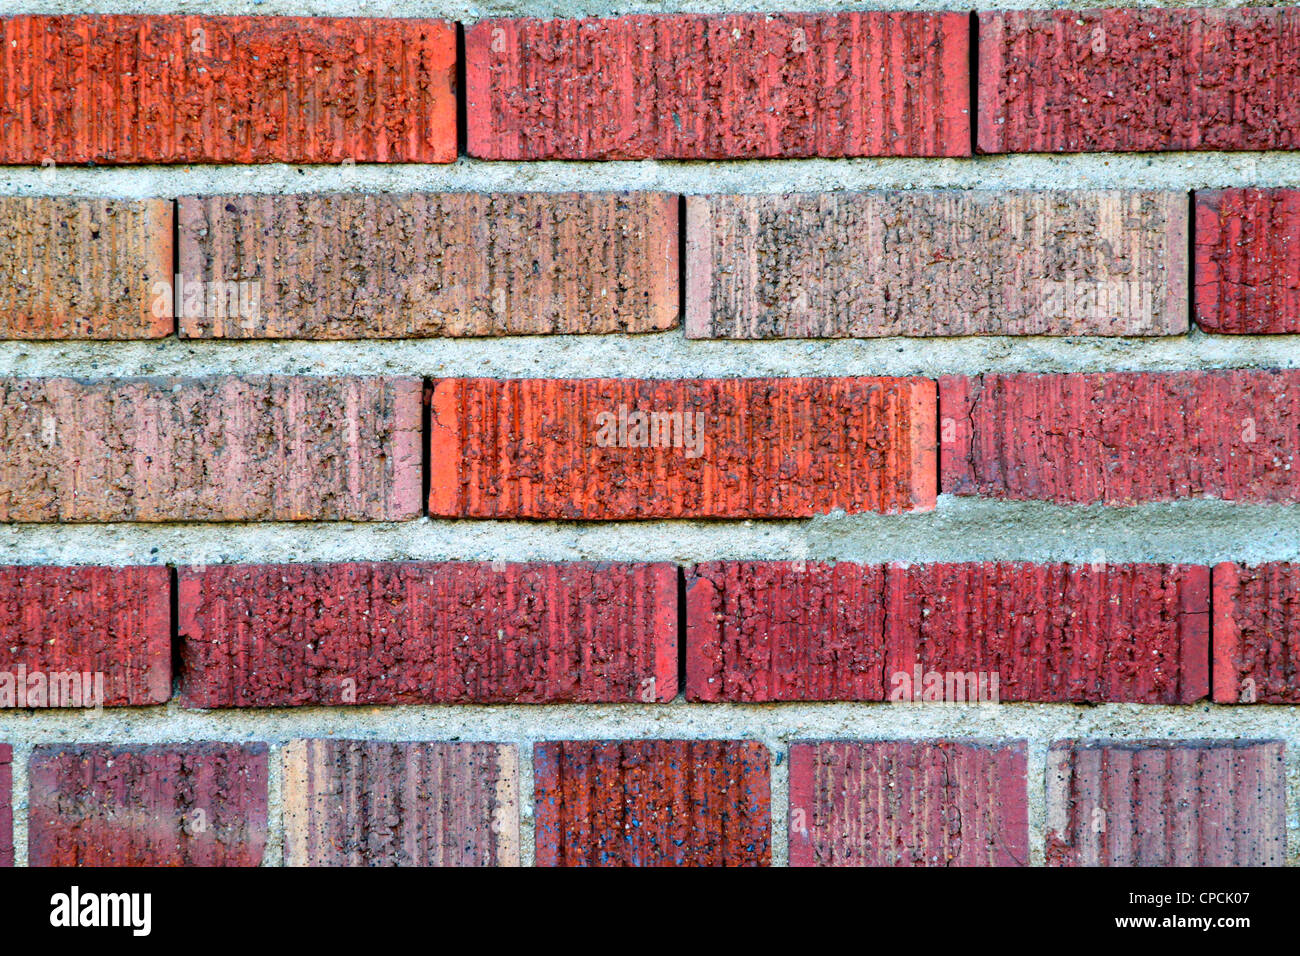 roten Backsteinmauer Stockbild